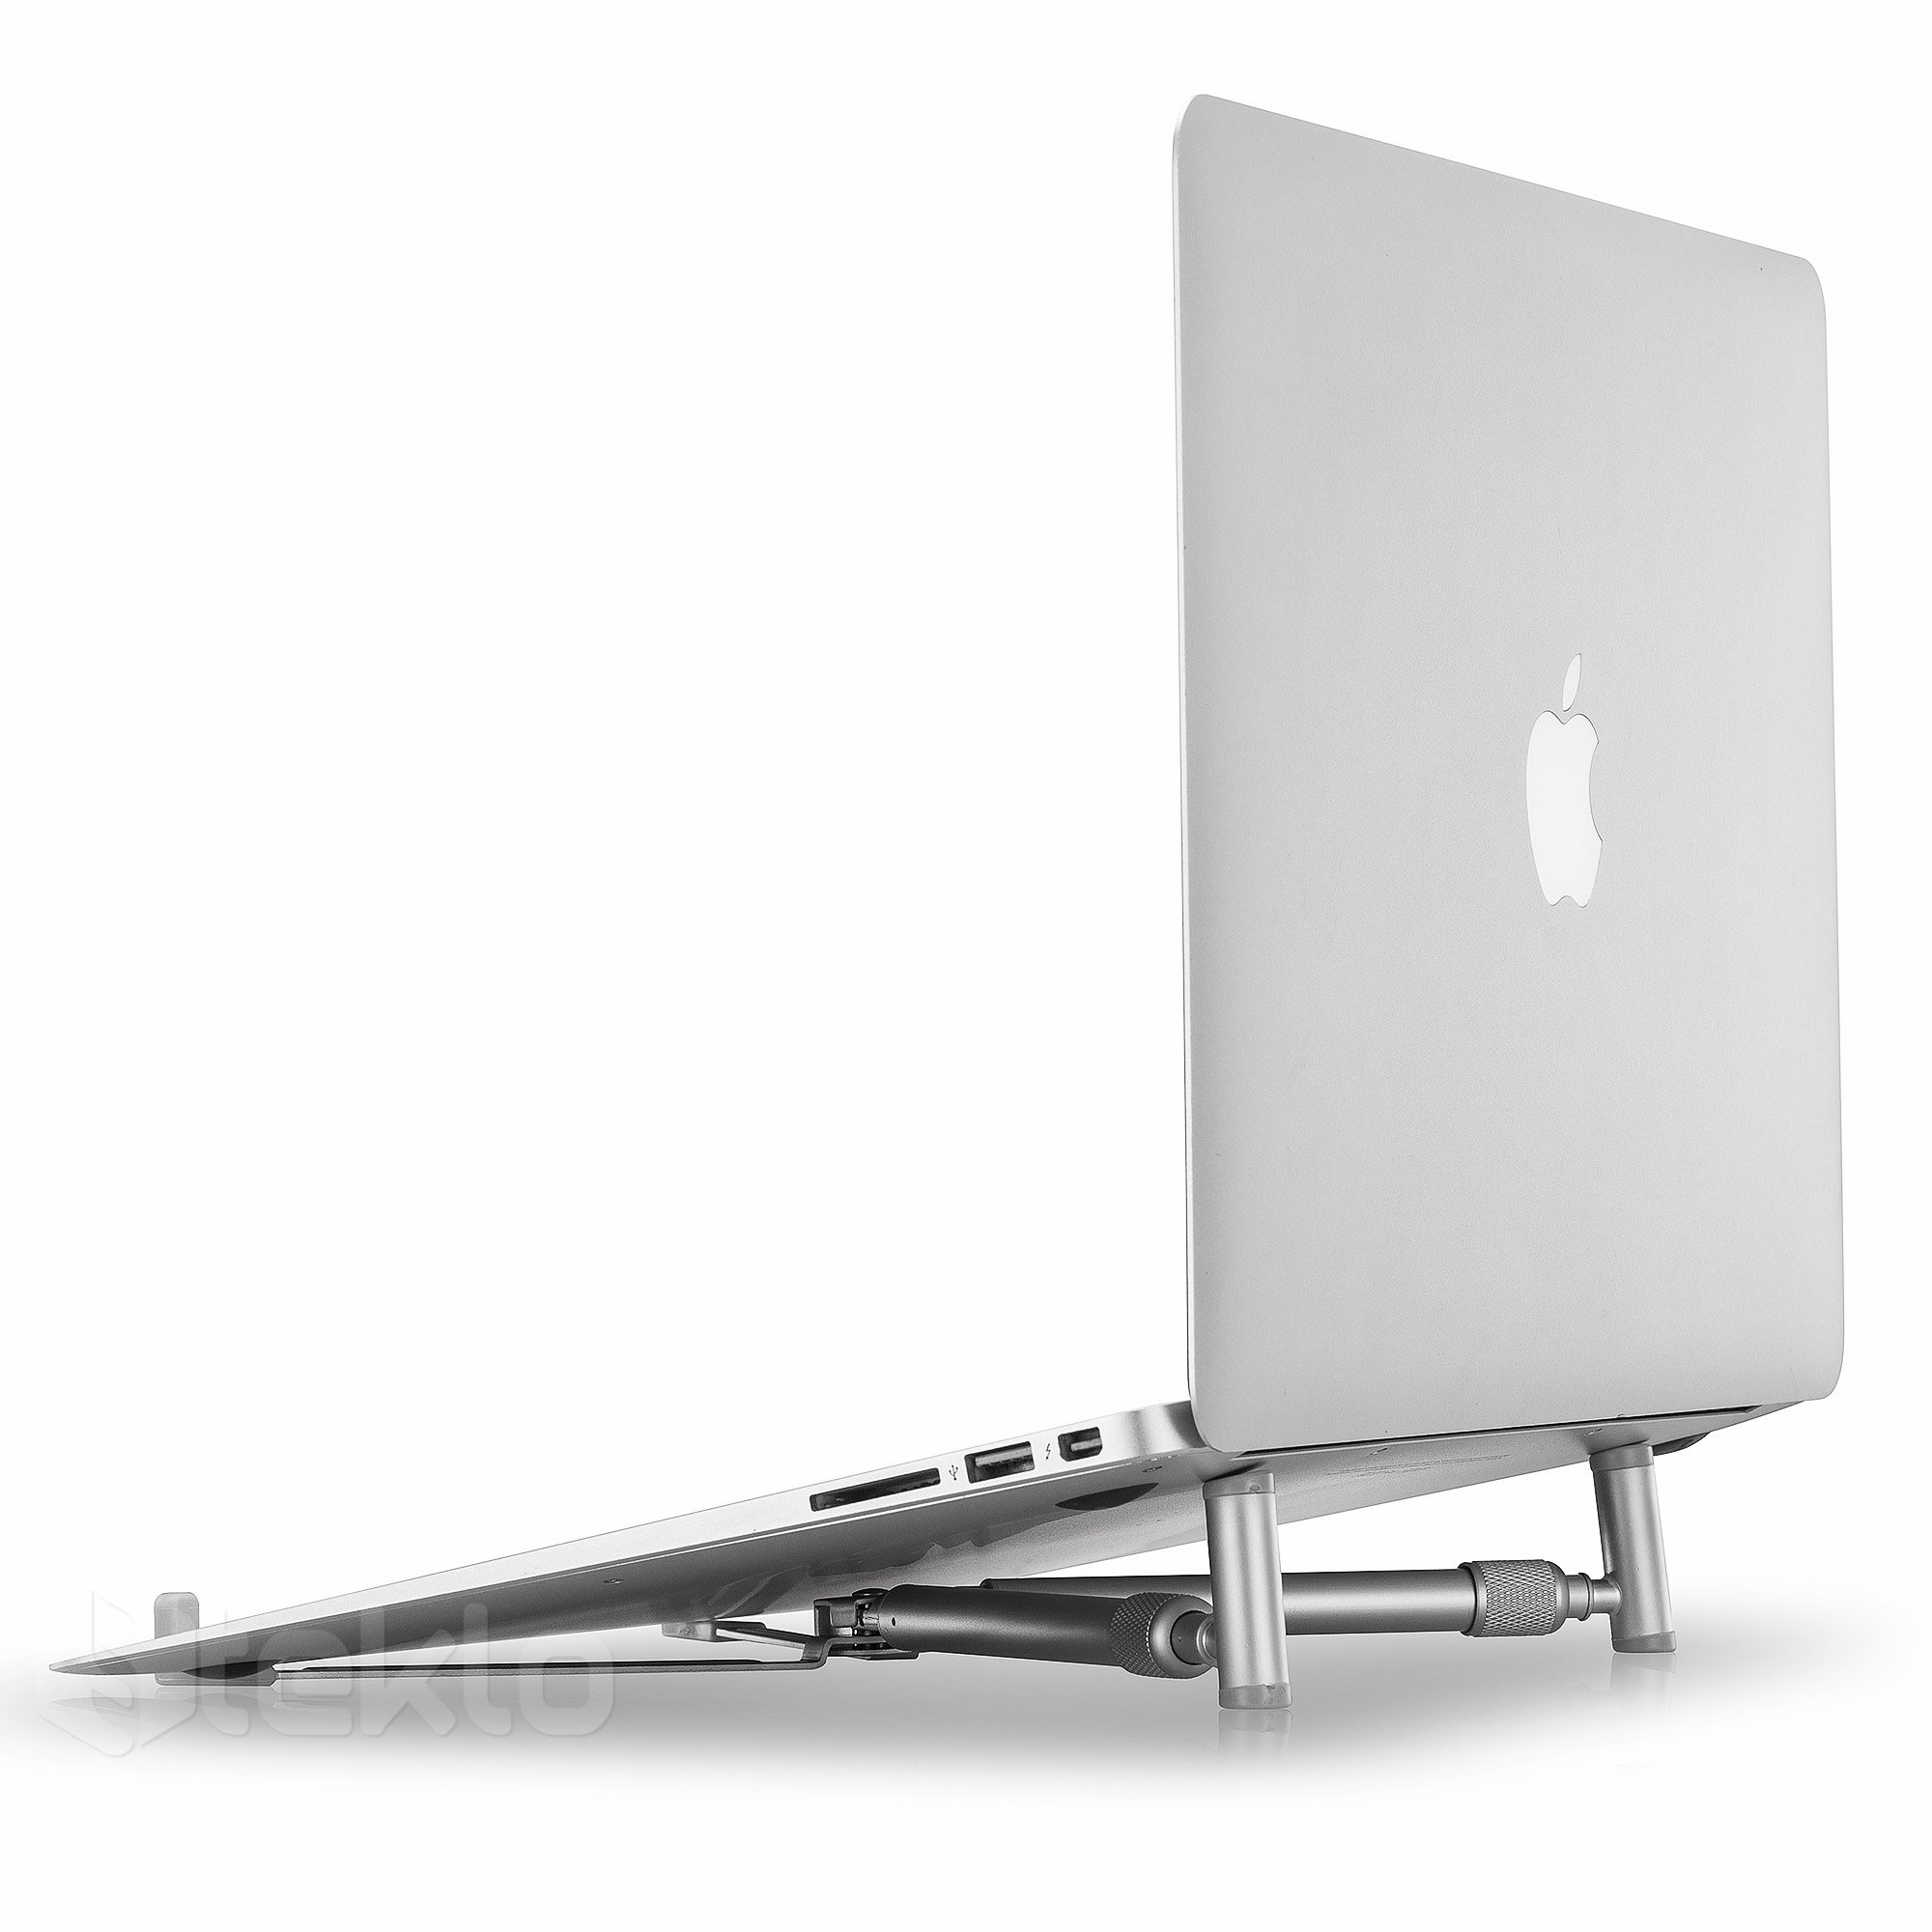 X-Stand Laptop Stand, Steklo Universal Computer Stand for MacBook 12'' 13'' 15'' 17'' Screen, Aluminum Cooling Portable Adjustable MacBook Stand, Laptop Riser (NEWEST 2018 2017 2016) X-Stand